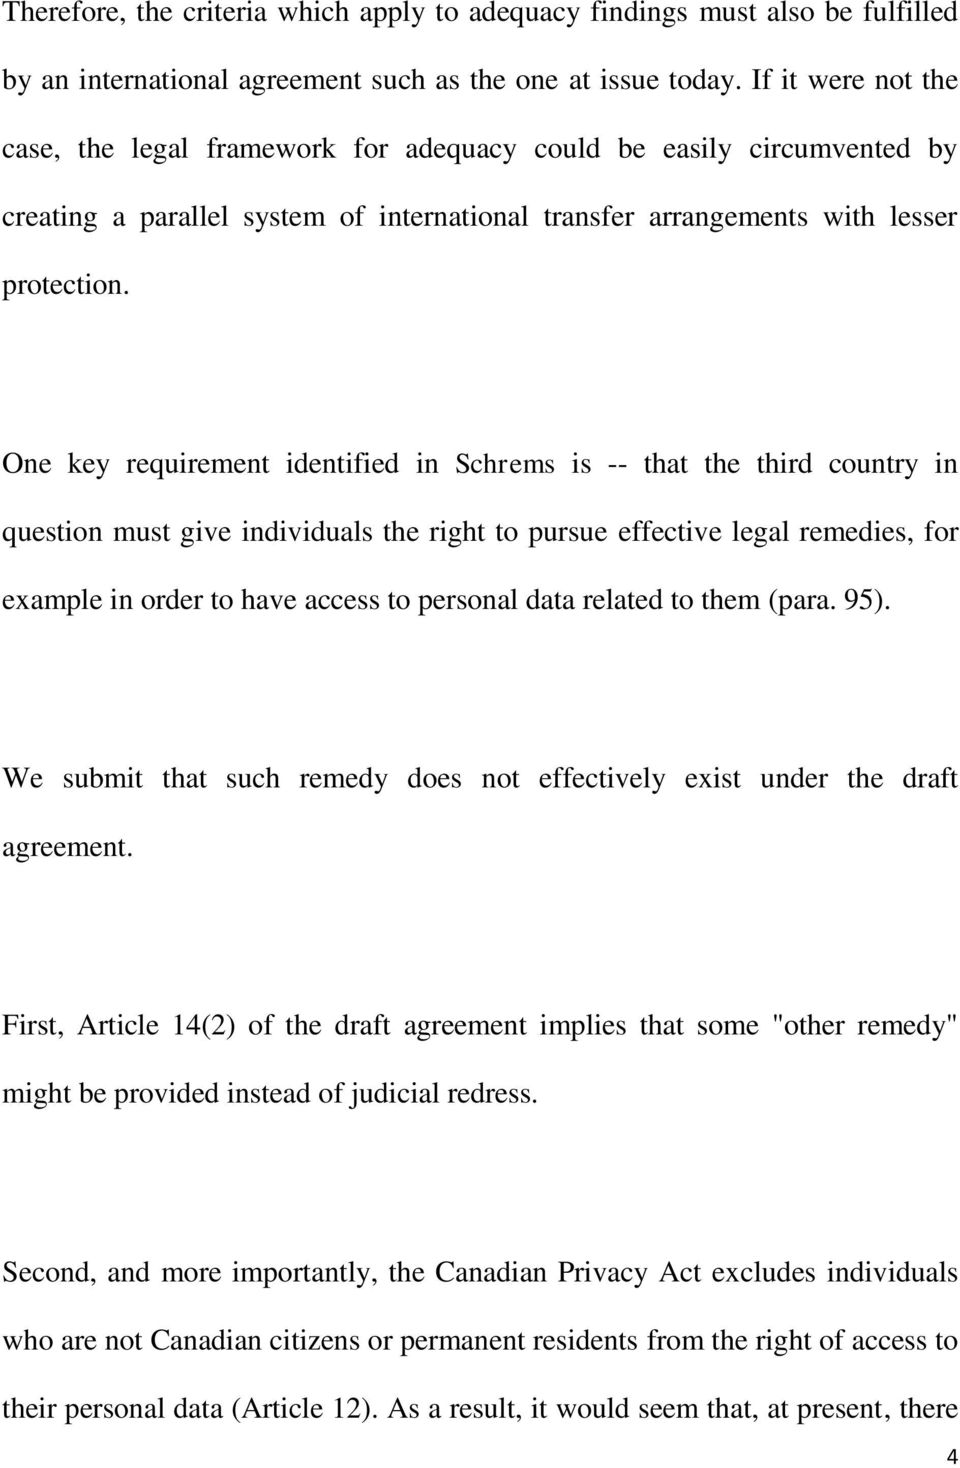 One key requirement identified in Schrems is -- that the third country in question must give individuals the right to pursue effective legal remedies, for example in order to have access to personal